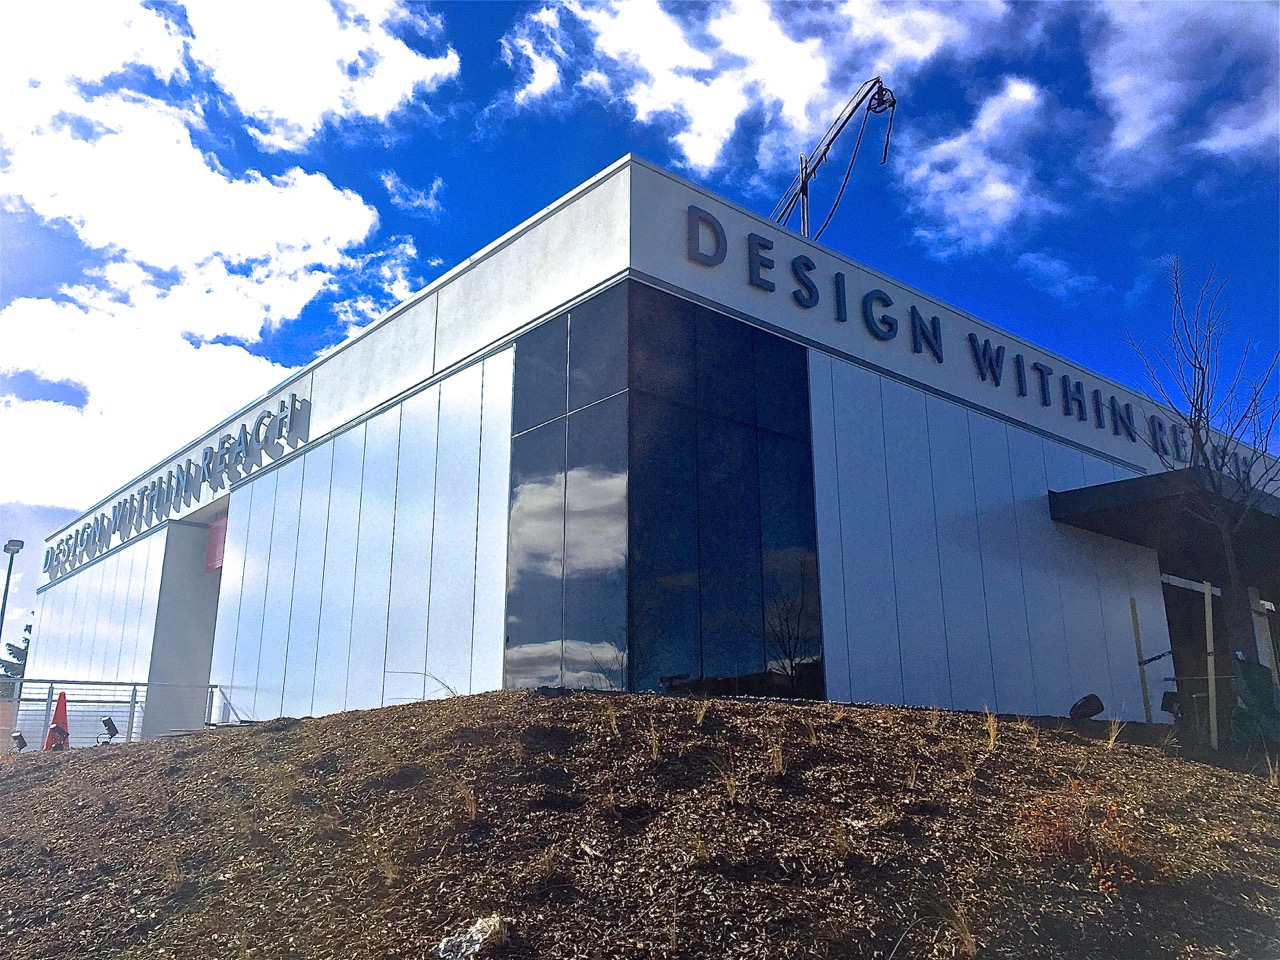 Design within reach paramus nj impact storefront designs - 1 garden state plaza paramus nj 07652 ...